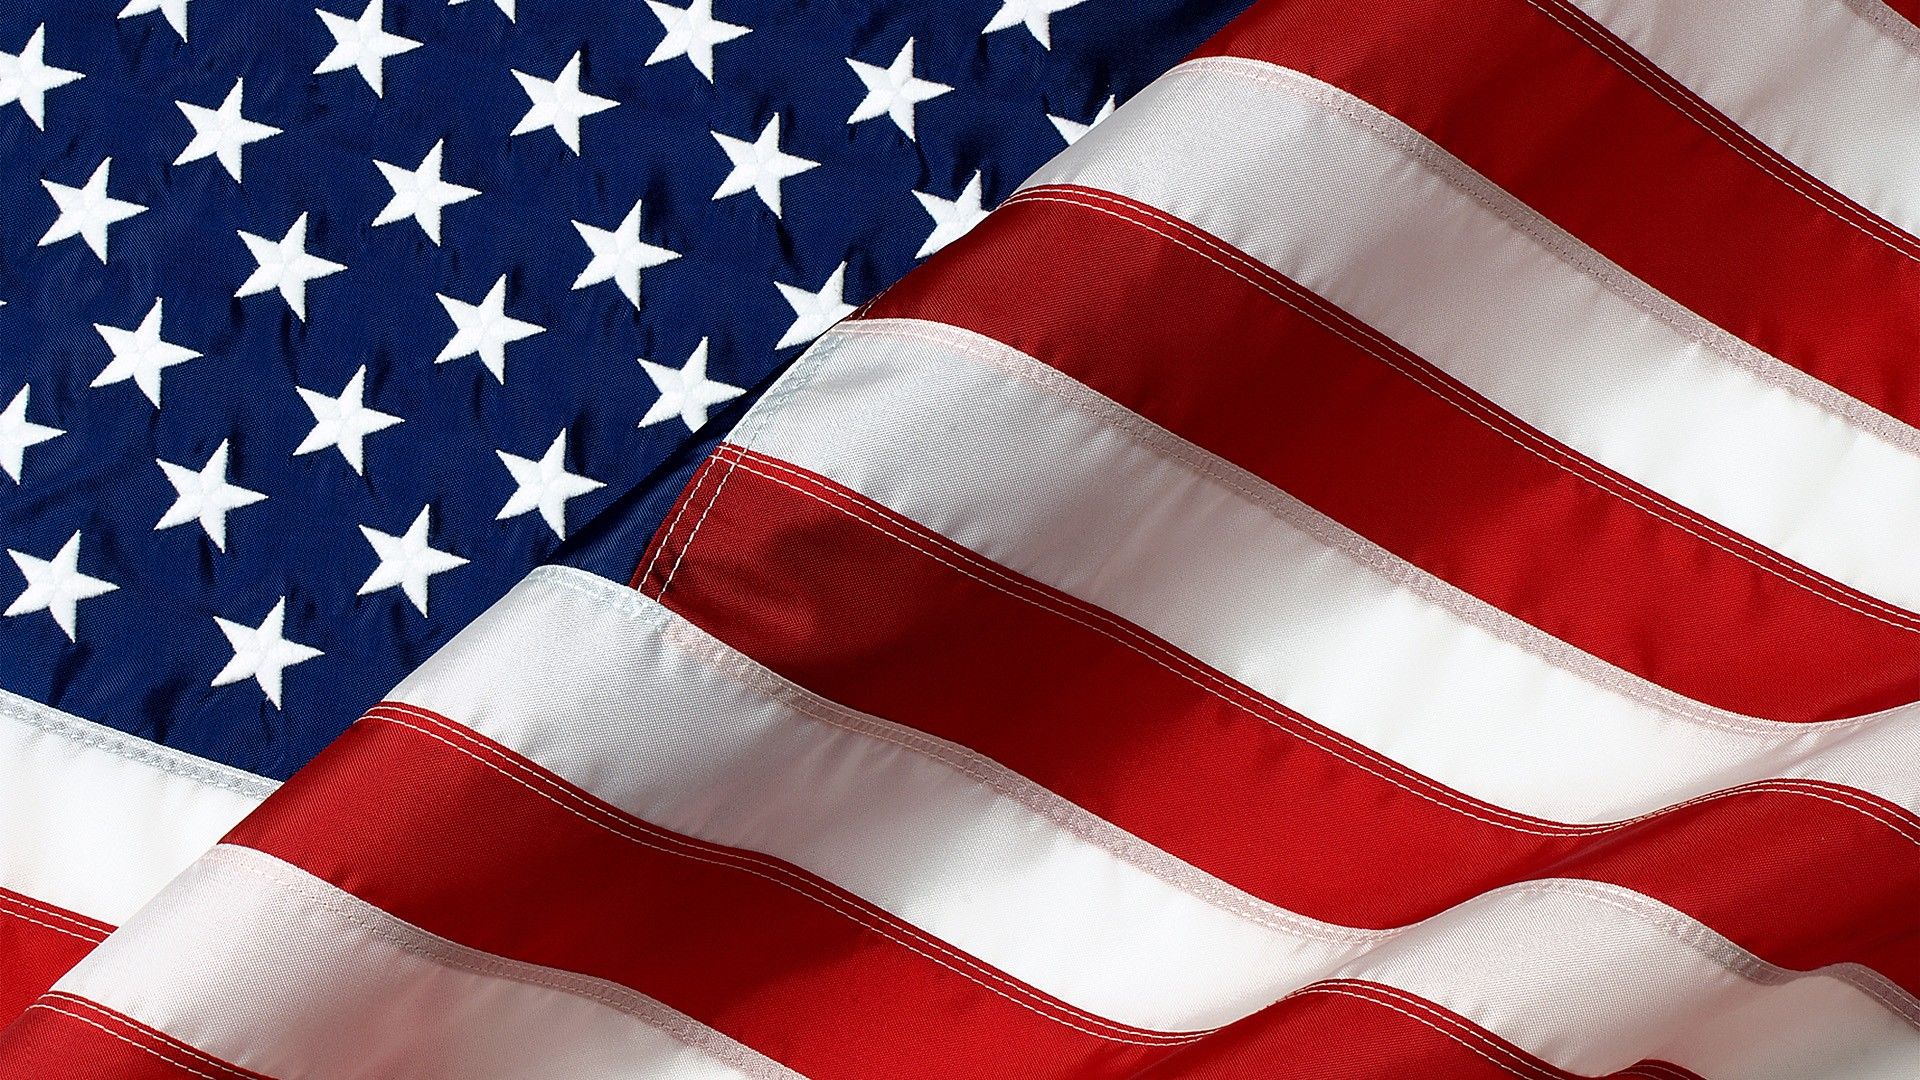 American Flag Desktop Background - WallpaperSafari